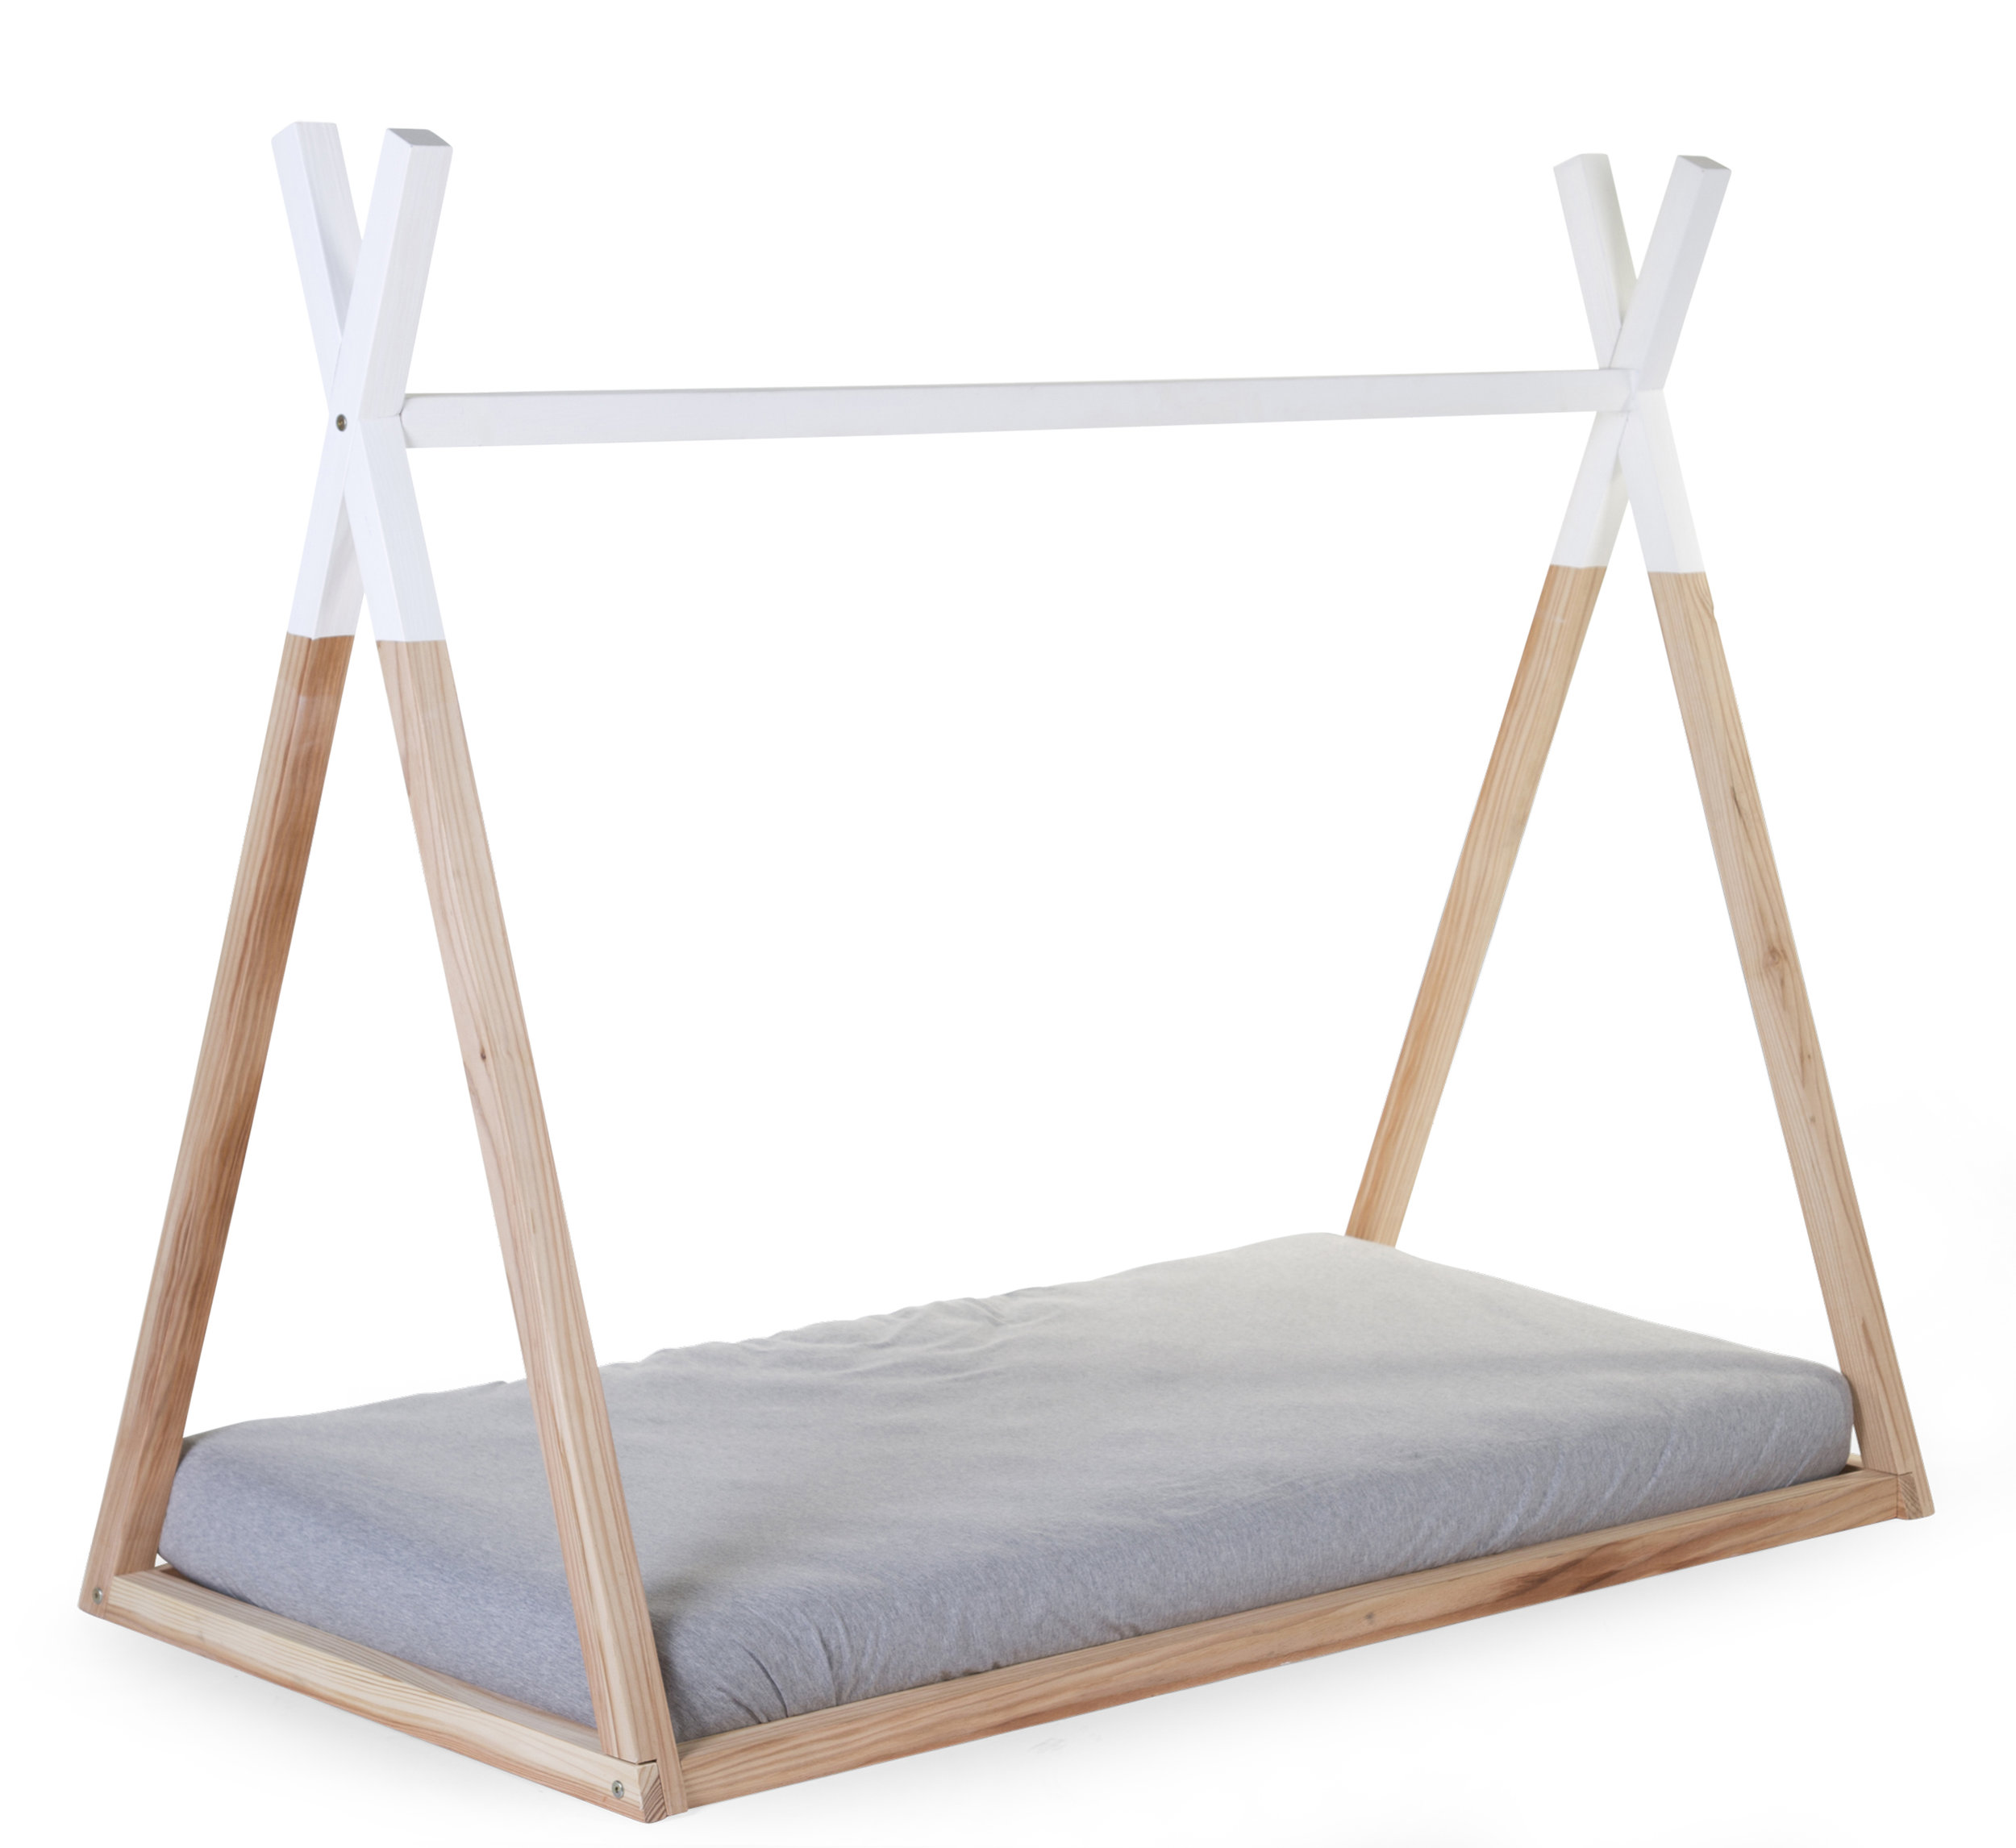 Tipi bed, from £89.95, available from  Cuckooland.com  from 1st July (cot size:148cm x 79cm / single size;208cm x 98cm)